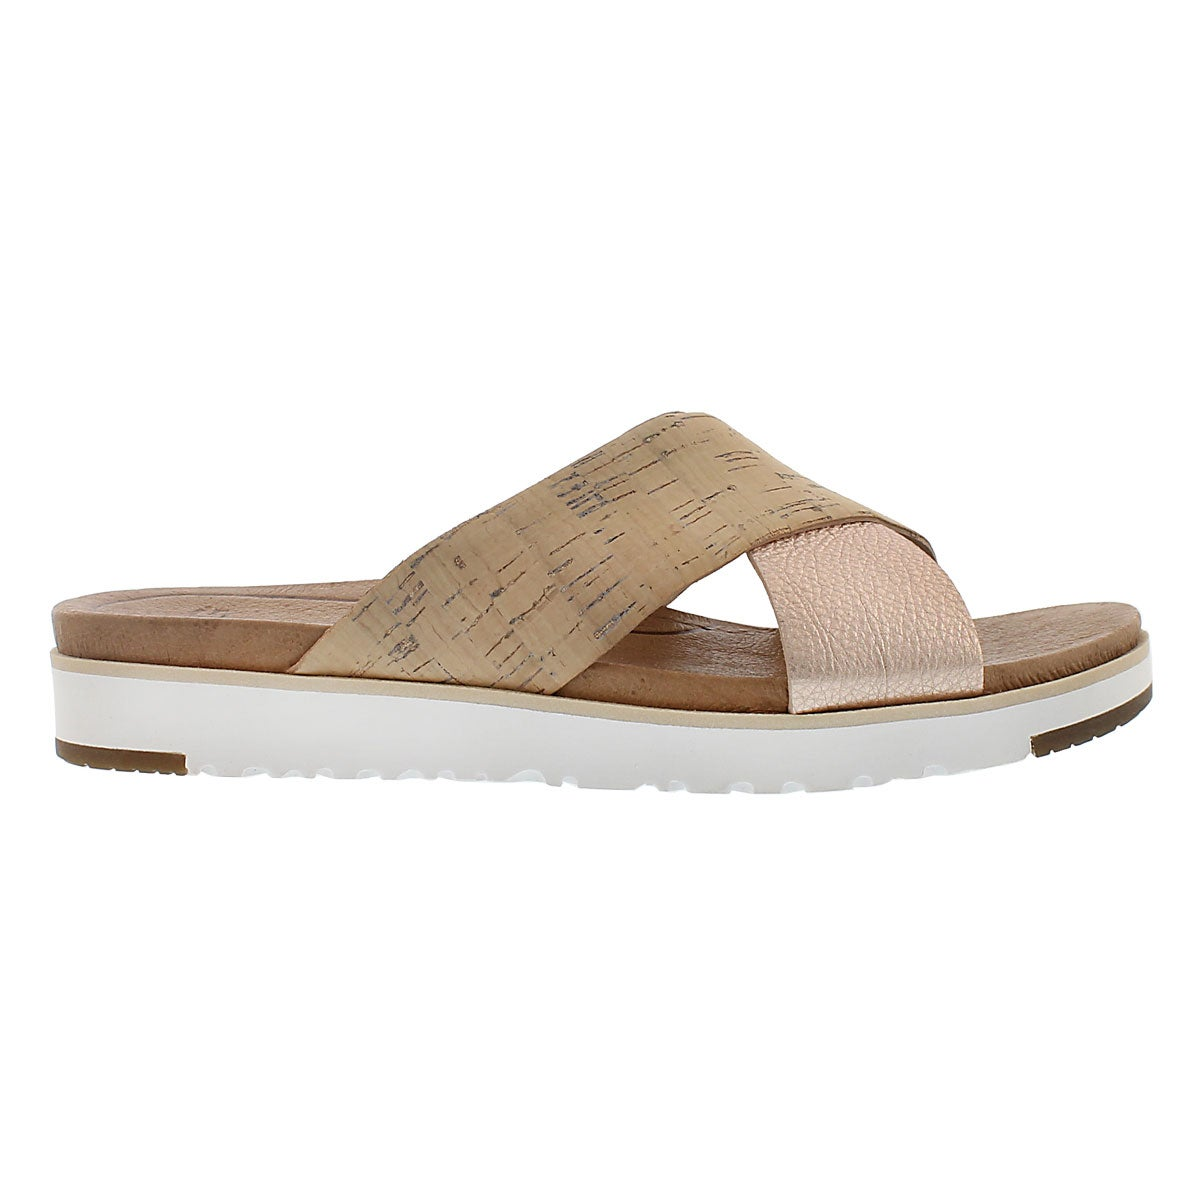 Lds Kari cork/rose casual slide sandal